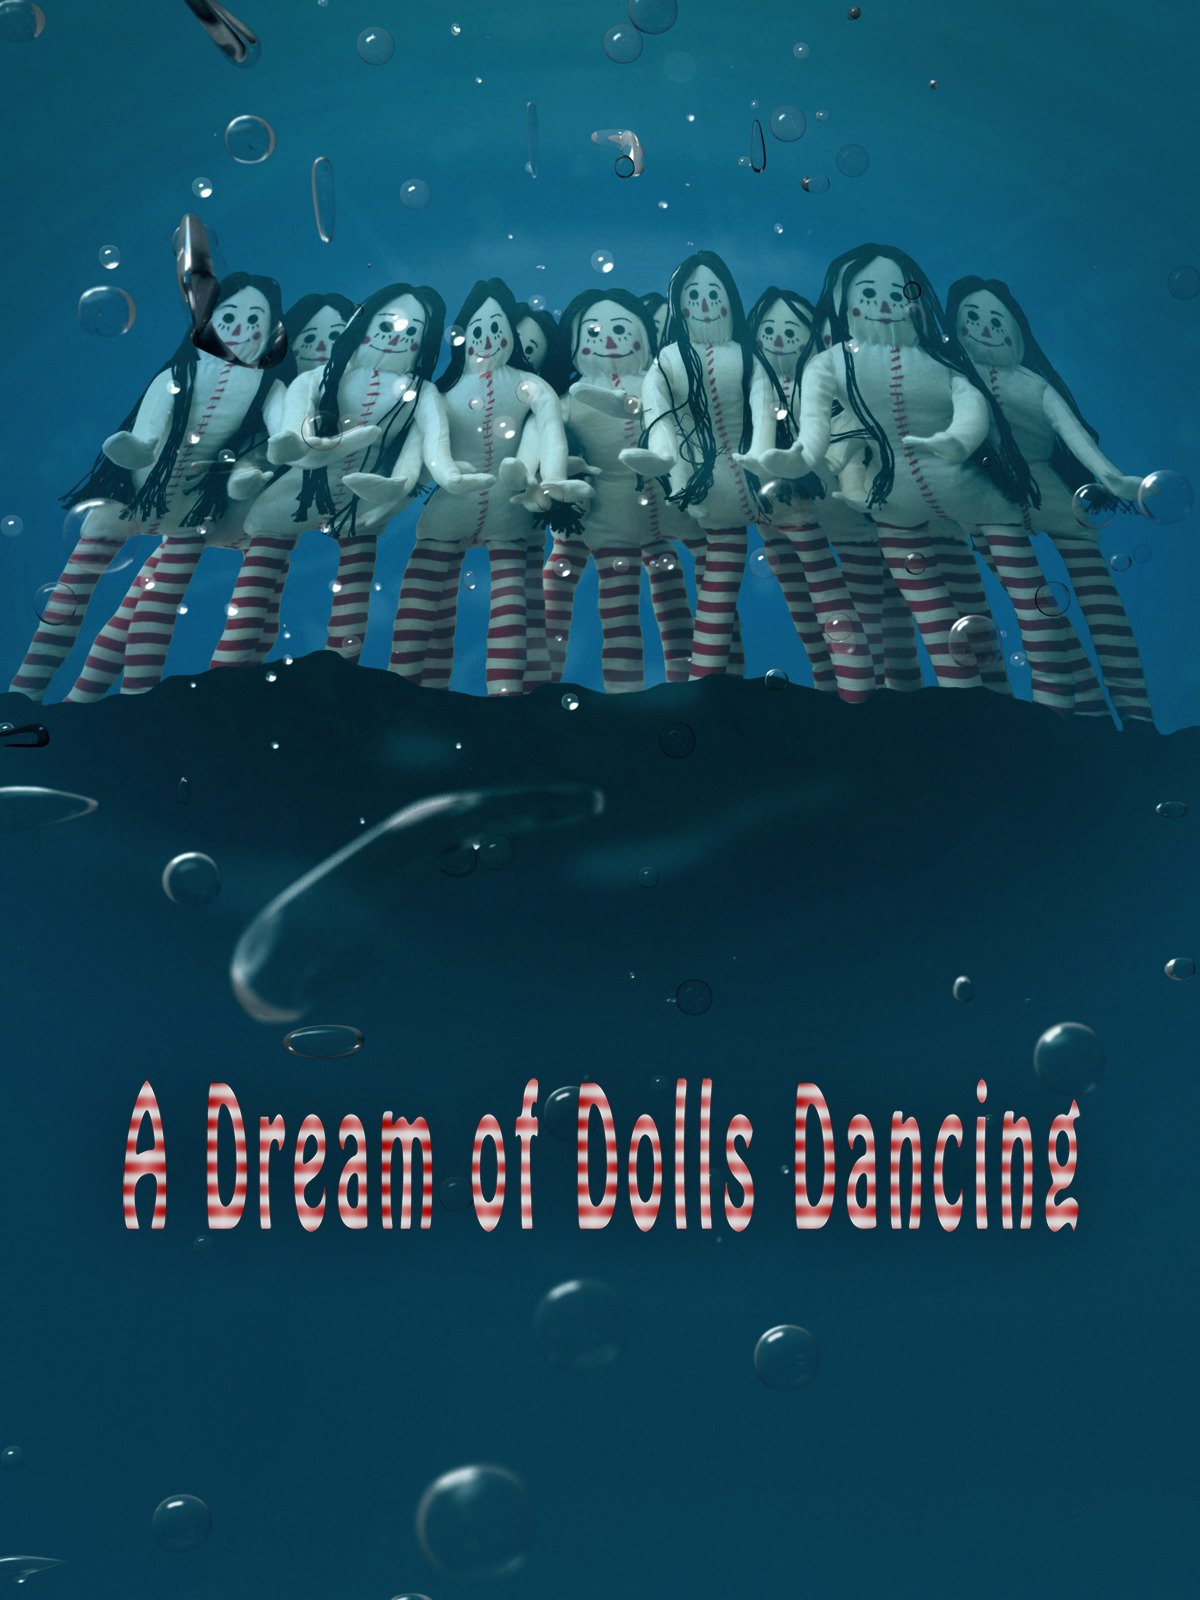 A Dream of Dolls Dancing